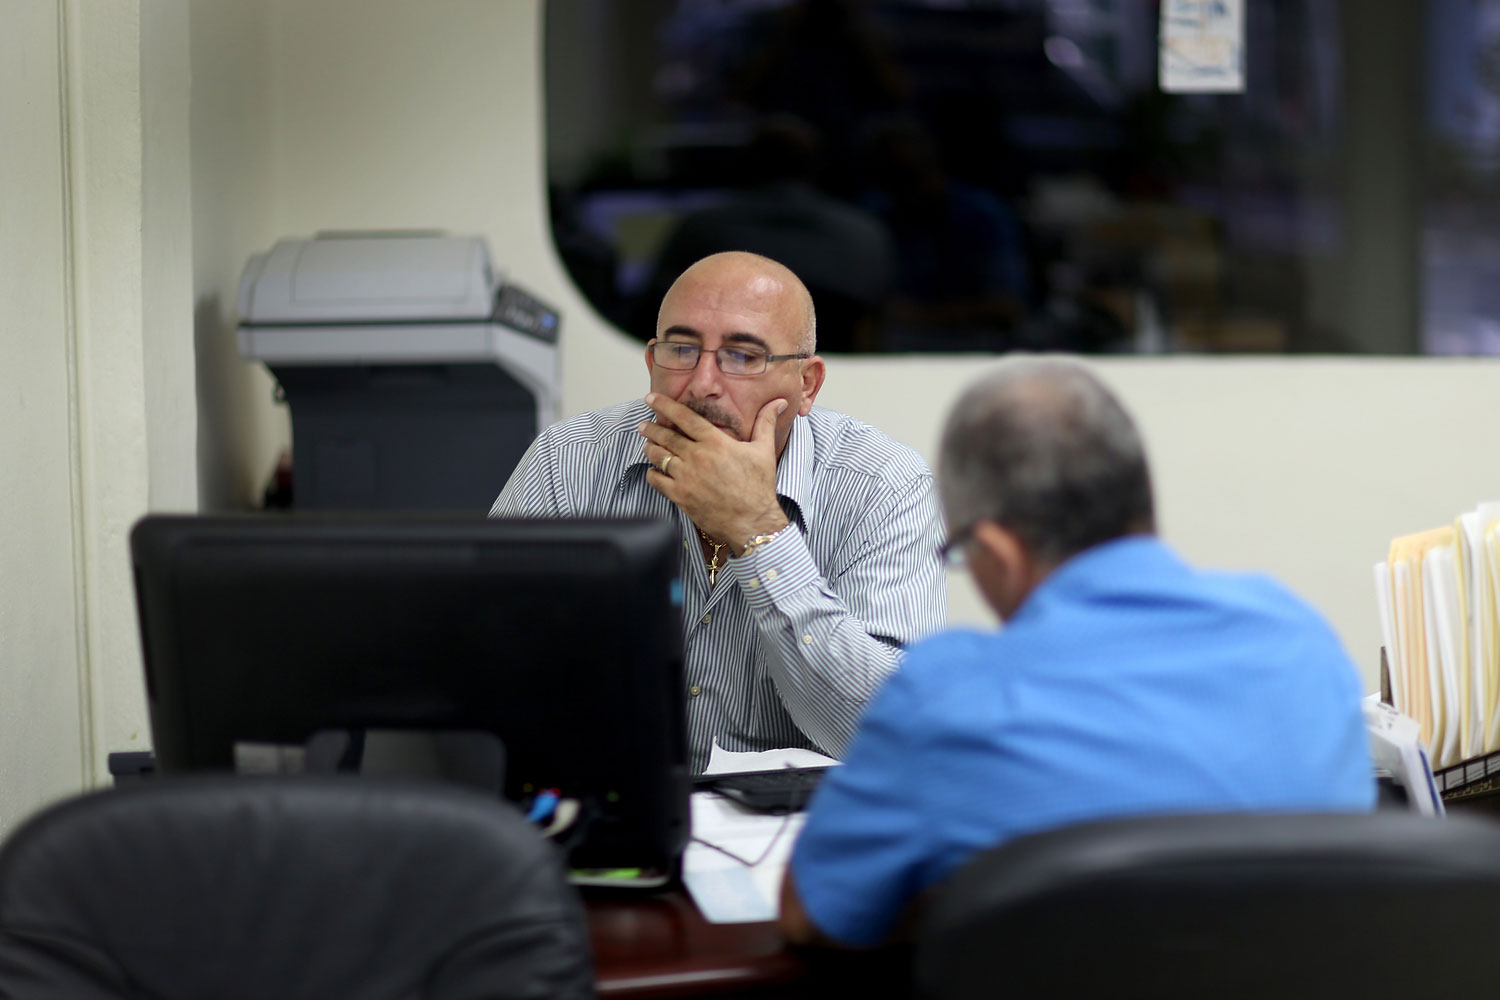 A. Michael Khoury at Leading Insurance Agency enrolls Hisham Uadadeh in a health insurance plan under the Affordable Care Act on Feb. 13, 2014 in Miami.